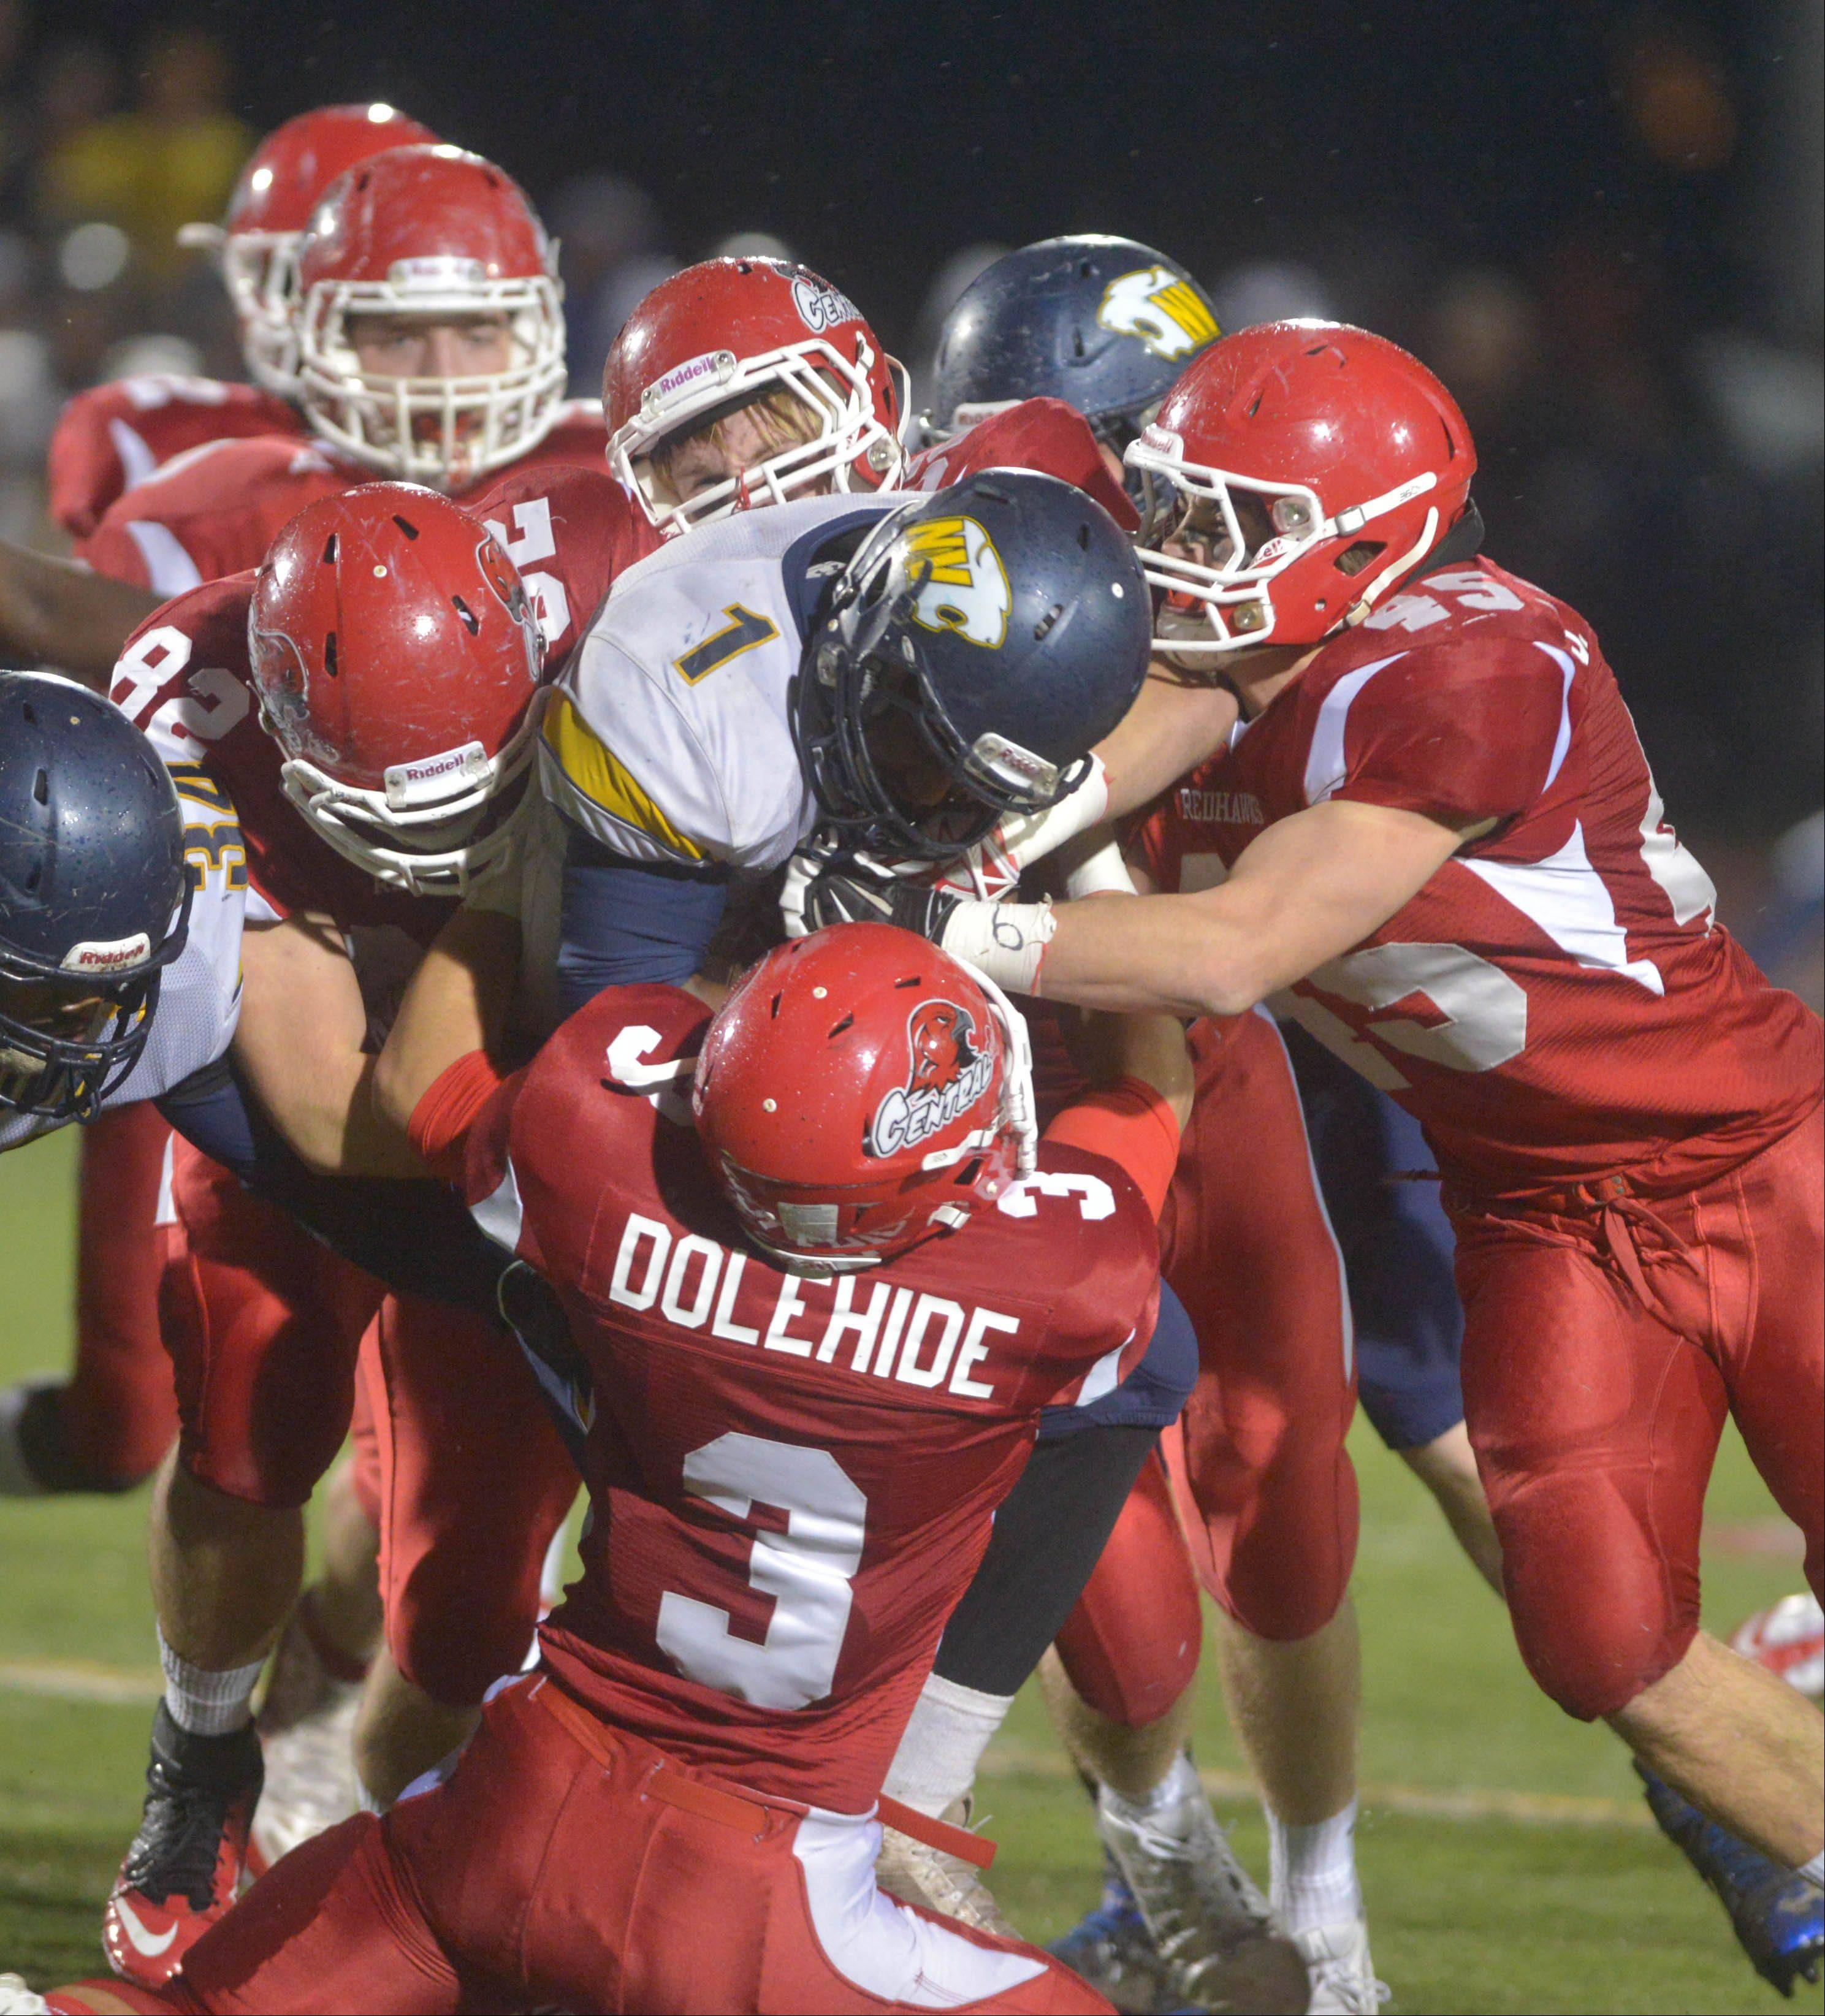 Nolan Dean of Neuqua is pulled down by Naperville Central defenders during the Neuqua Valley at Naperville Central Class 8A football quarterfinal Saturday.